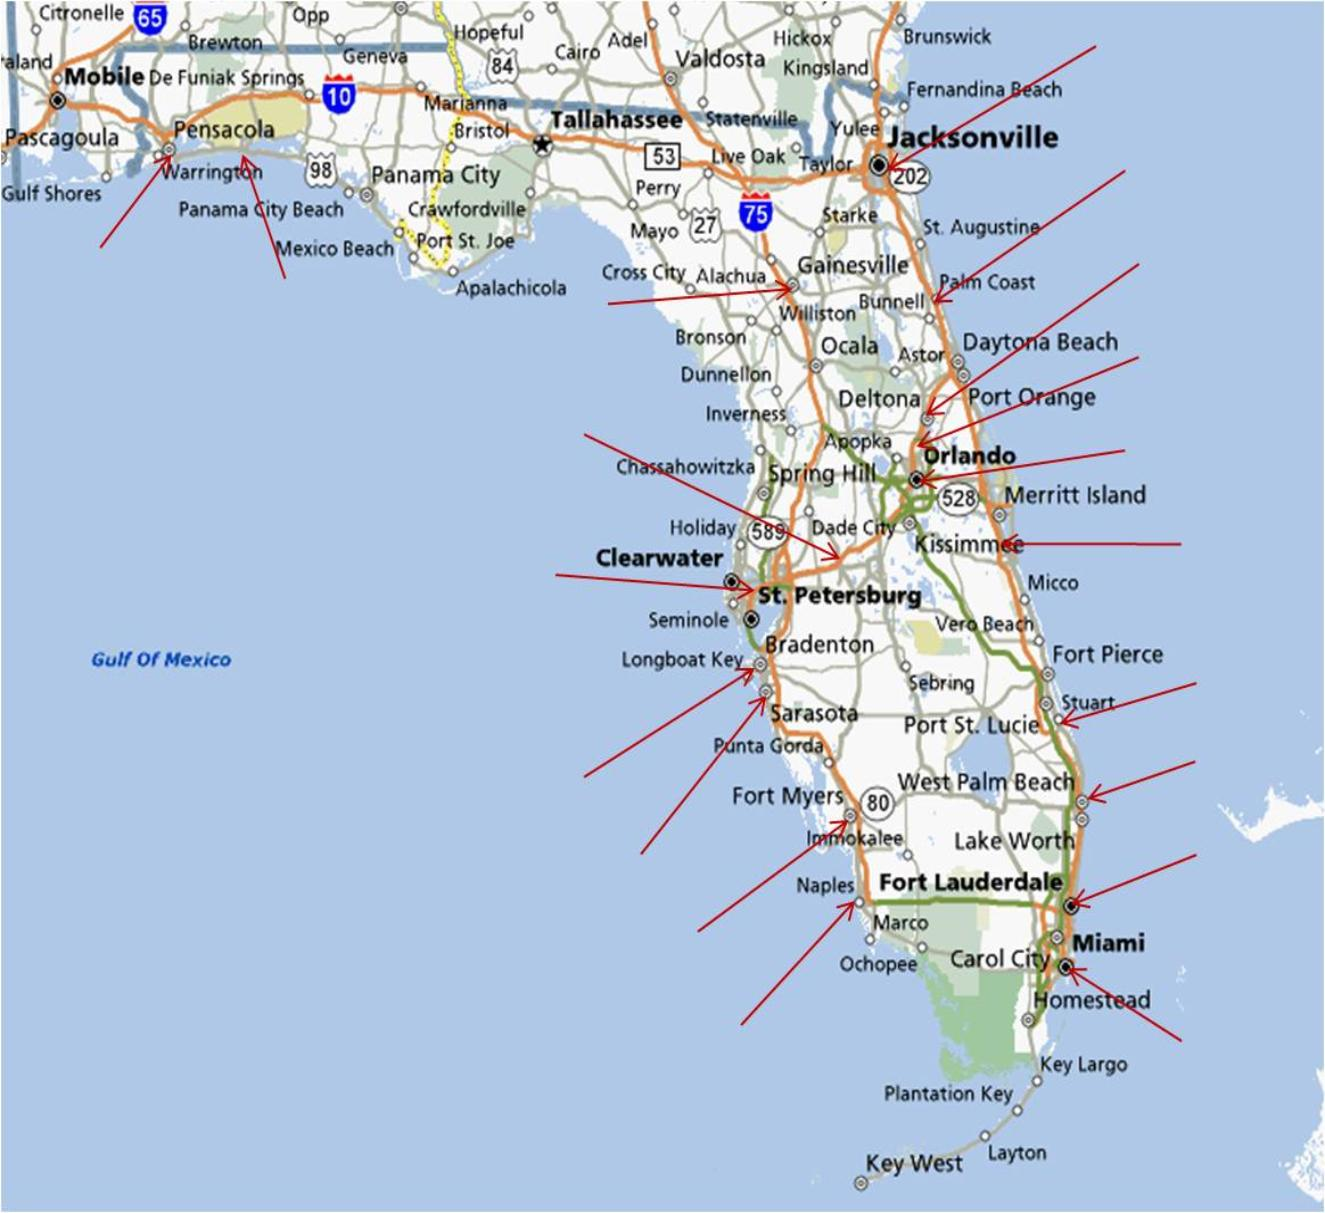 florida map of east coast beaches